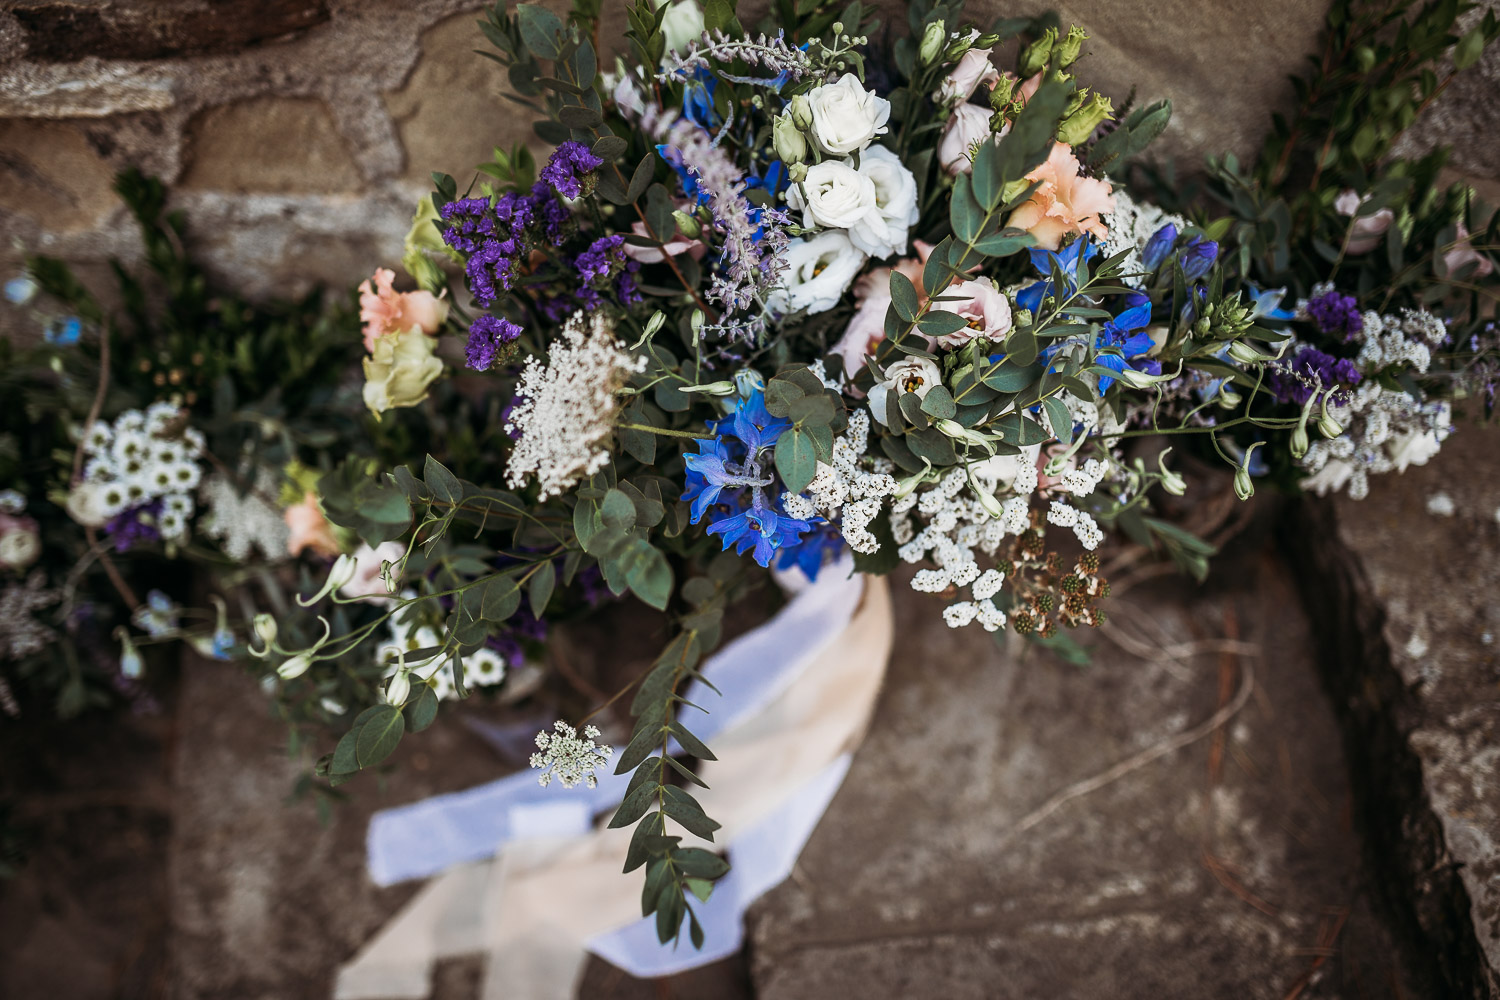 Wedding bouquet with blue and violet wildflowers made by Roberta Turco